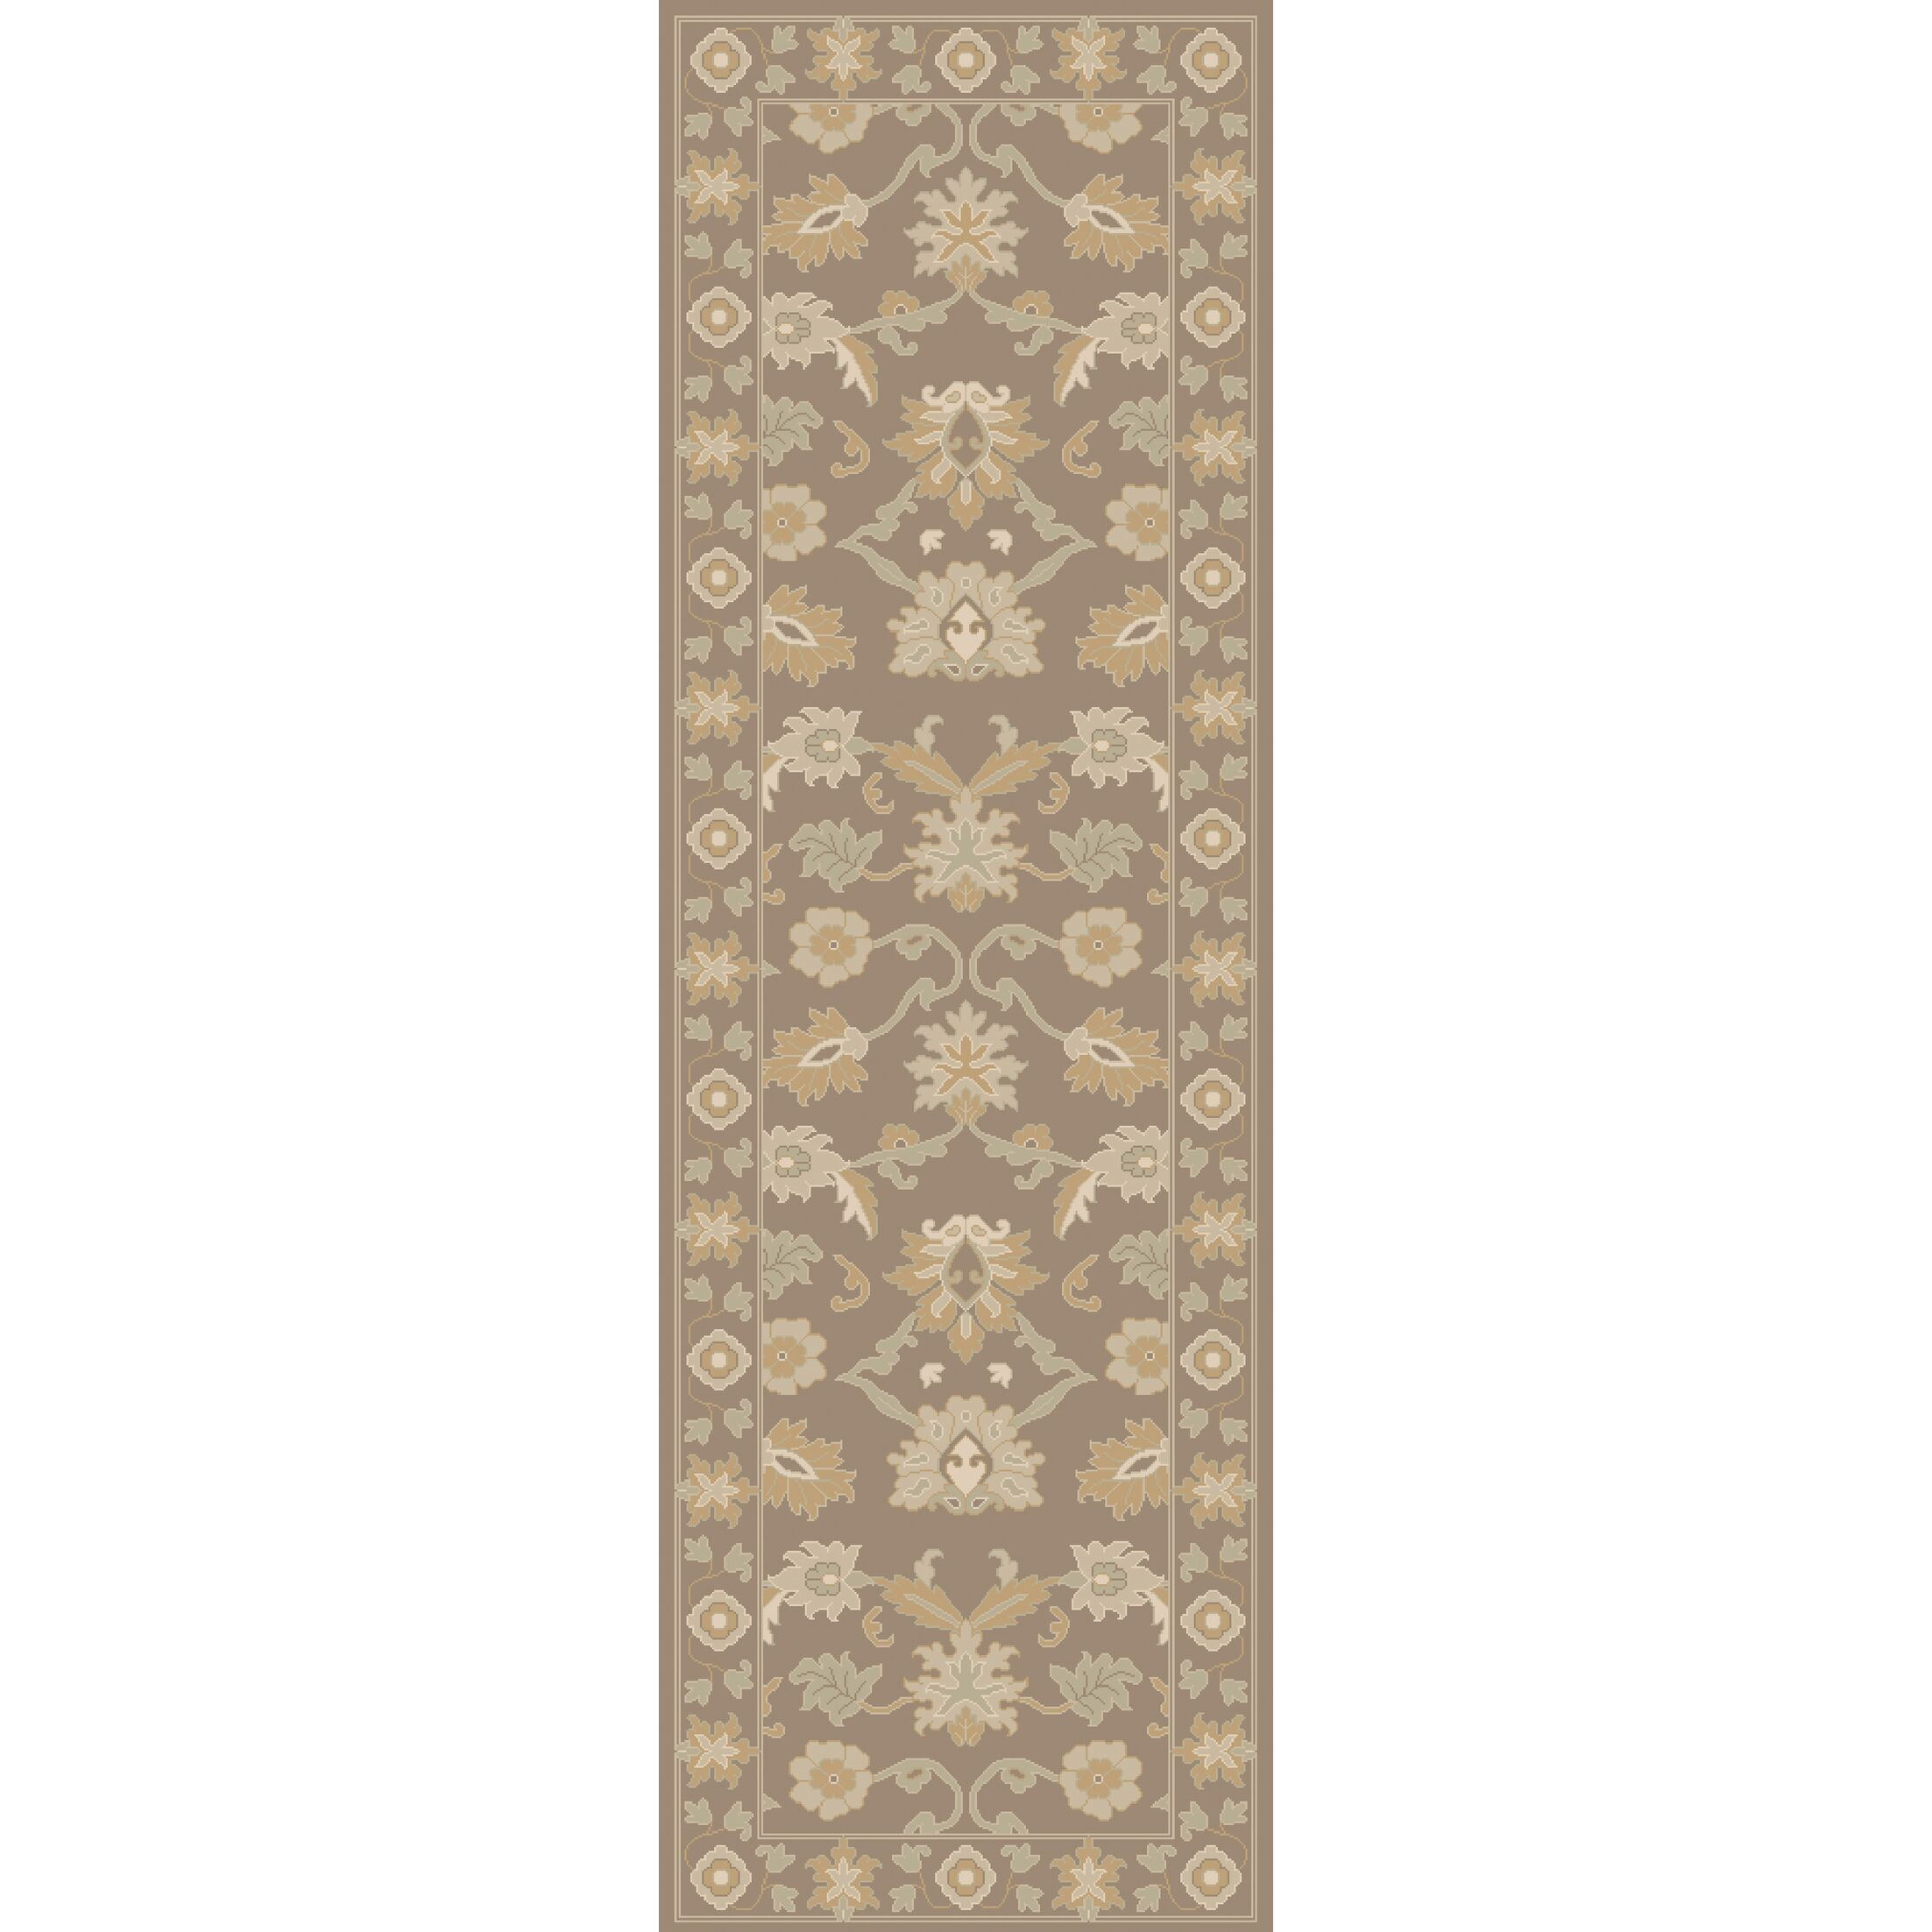 Keefer Hand-Tufted Taupe Area Rug Rug Size: Square 9'9